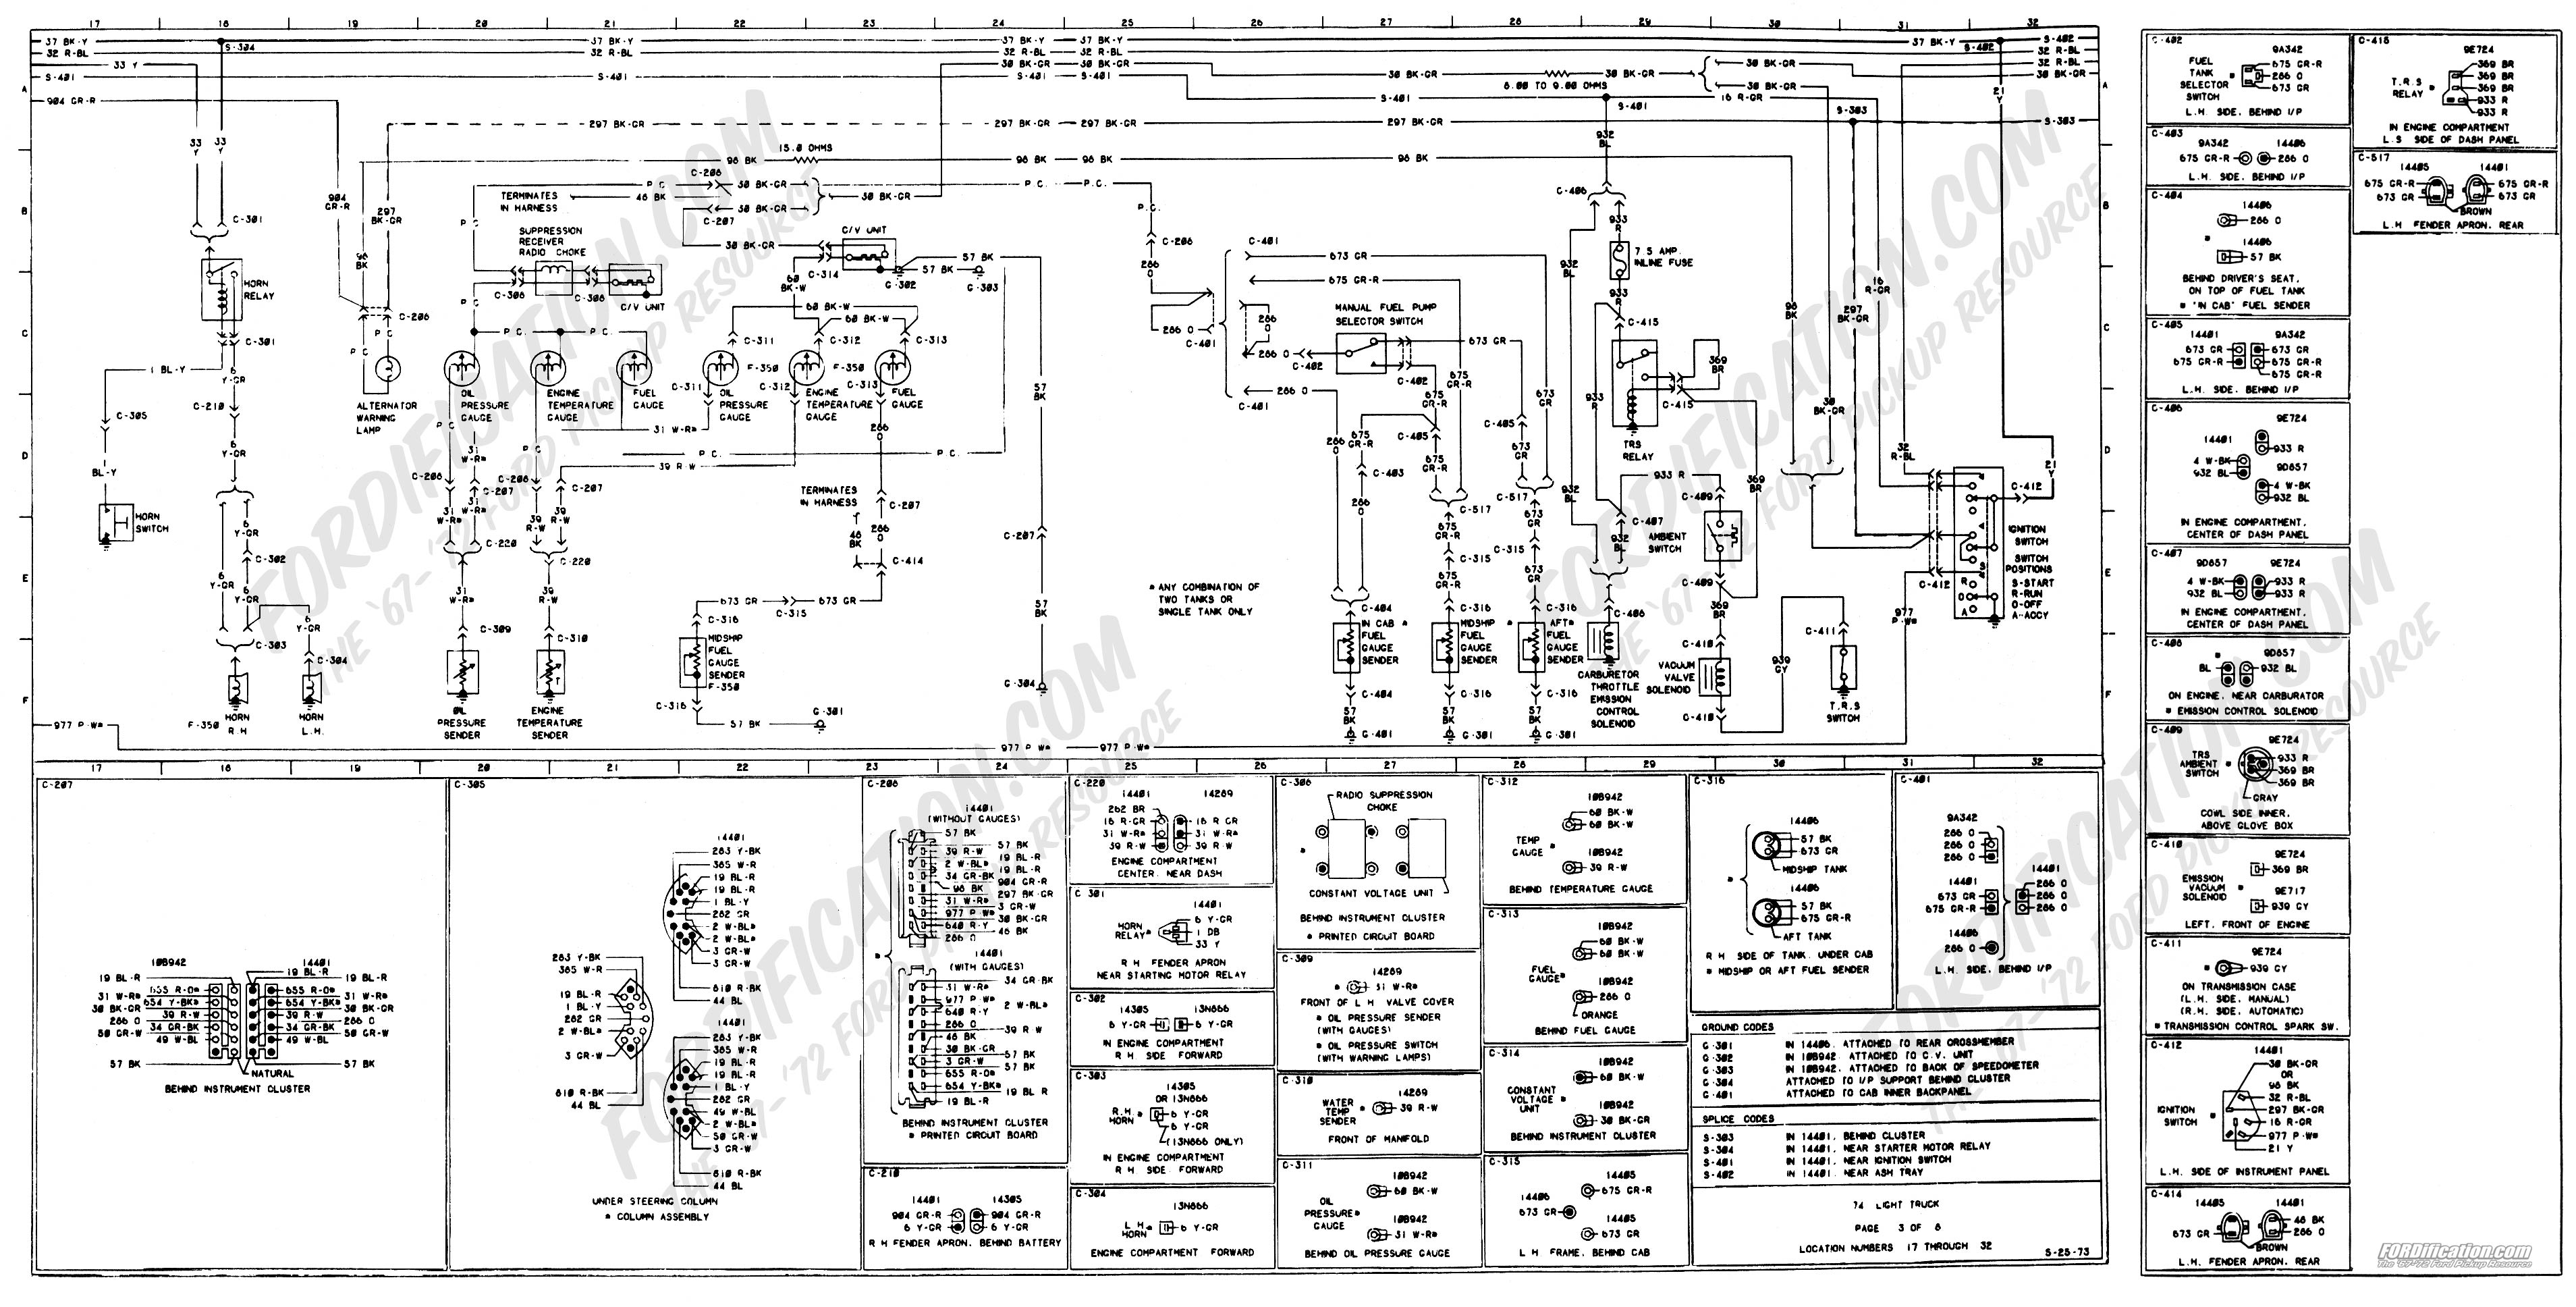 wiring_74master_3of8 1973 1979 ford truck wiring diagrams & schematics fordification net ford ltl 9000 wiring diagram at bayanpartner.co